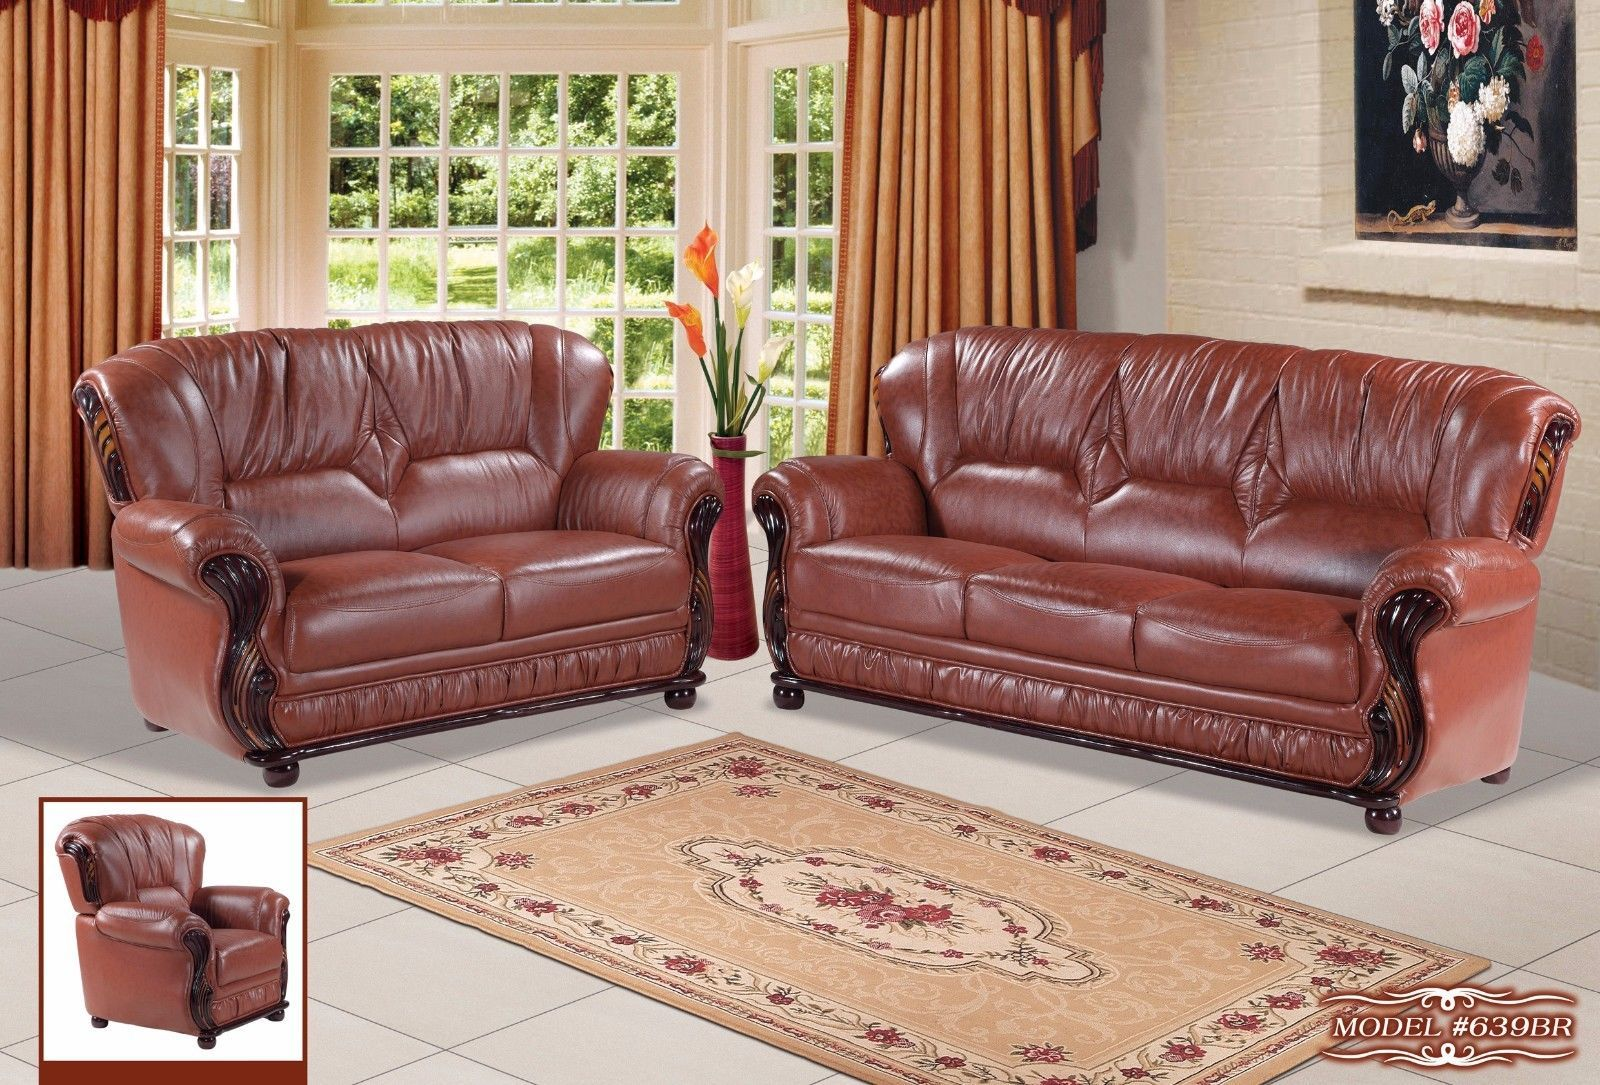 Meridian 639 Mina Living Room Set 3pcs in Brown Bonded Leather Traditional Style